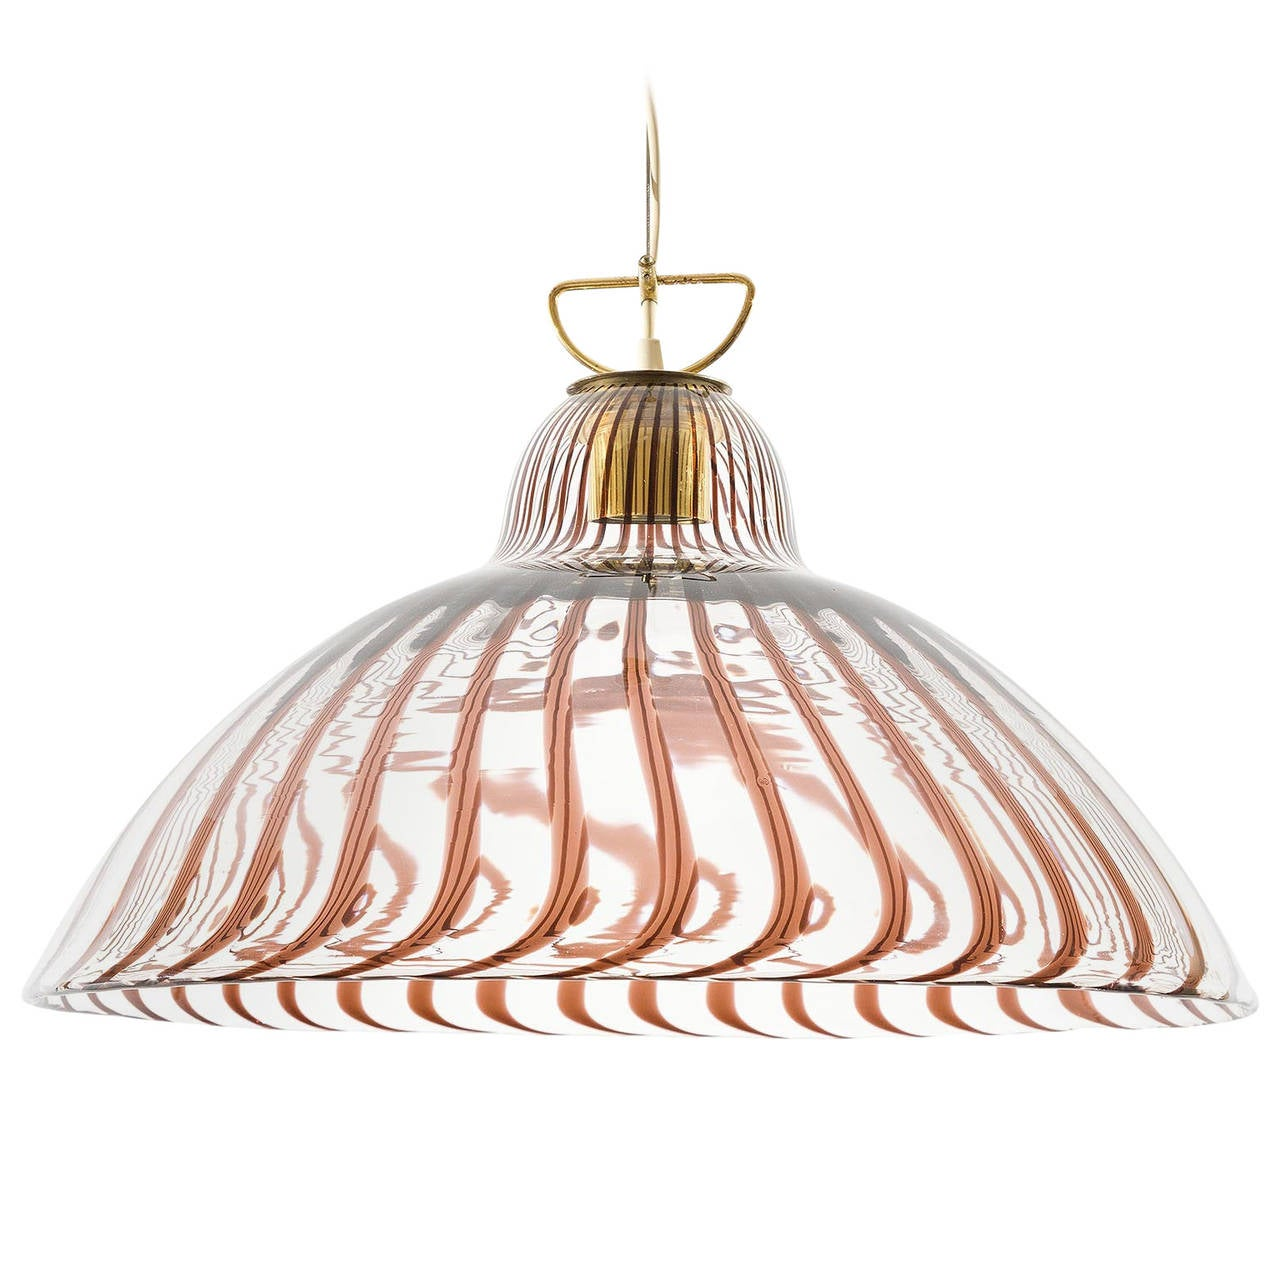 large striped glass and brass pendant light chandelier by